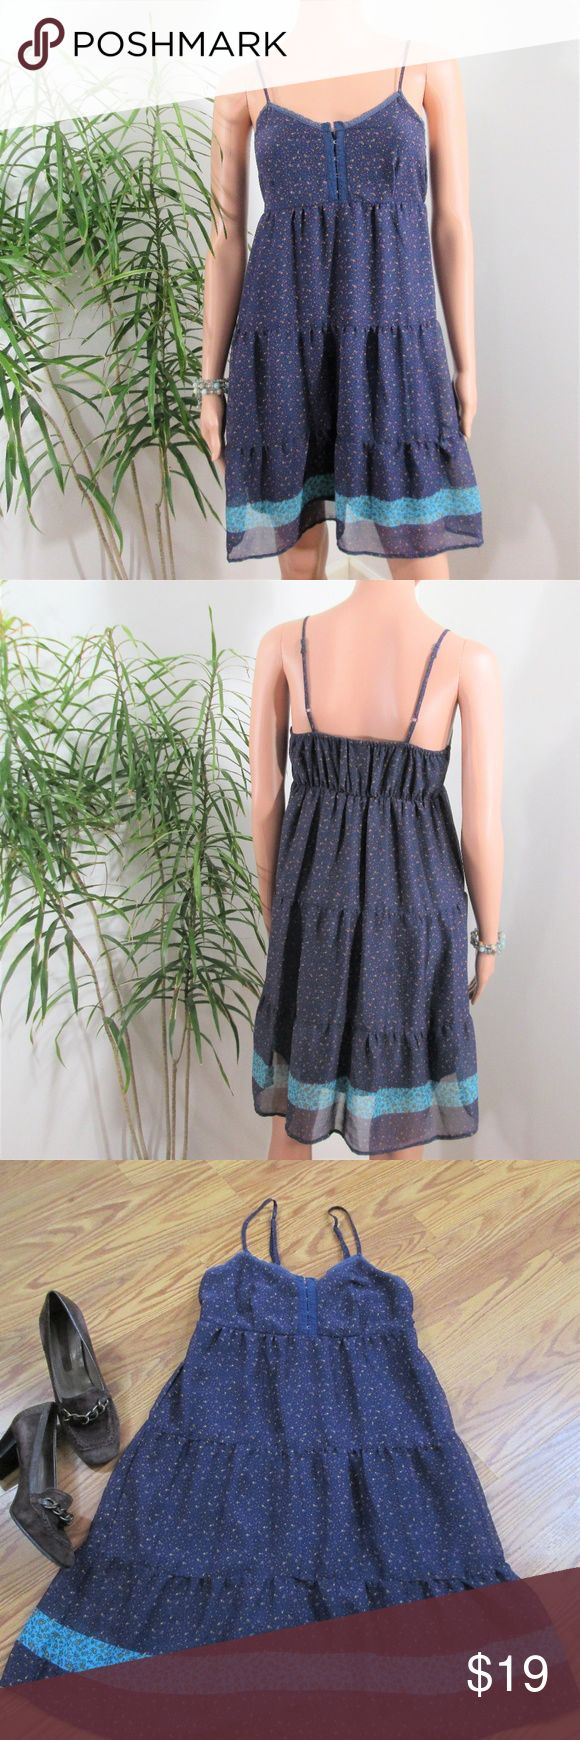 """Mossimo* Navy Floral Baby Doll Mini Dress Navy blue chiffon with tiny purple/gold/turquoise flowers. Contrasting stripe near hem Tiered skirt, empire waist. Solid lining. Hook & eye bodice closure. Adjustable straps, elastic across back.  Measured flat. 14"""" pit to pit. 28"""" long with out straps. Mid thigh on 5' 9'' model, 33'' x 24'' x 33.5''. poly Mossimo Supply Co. Dresses Mini"""